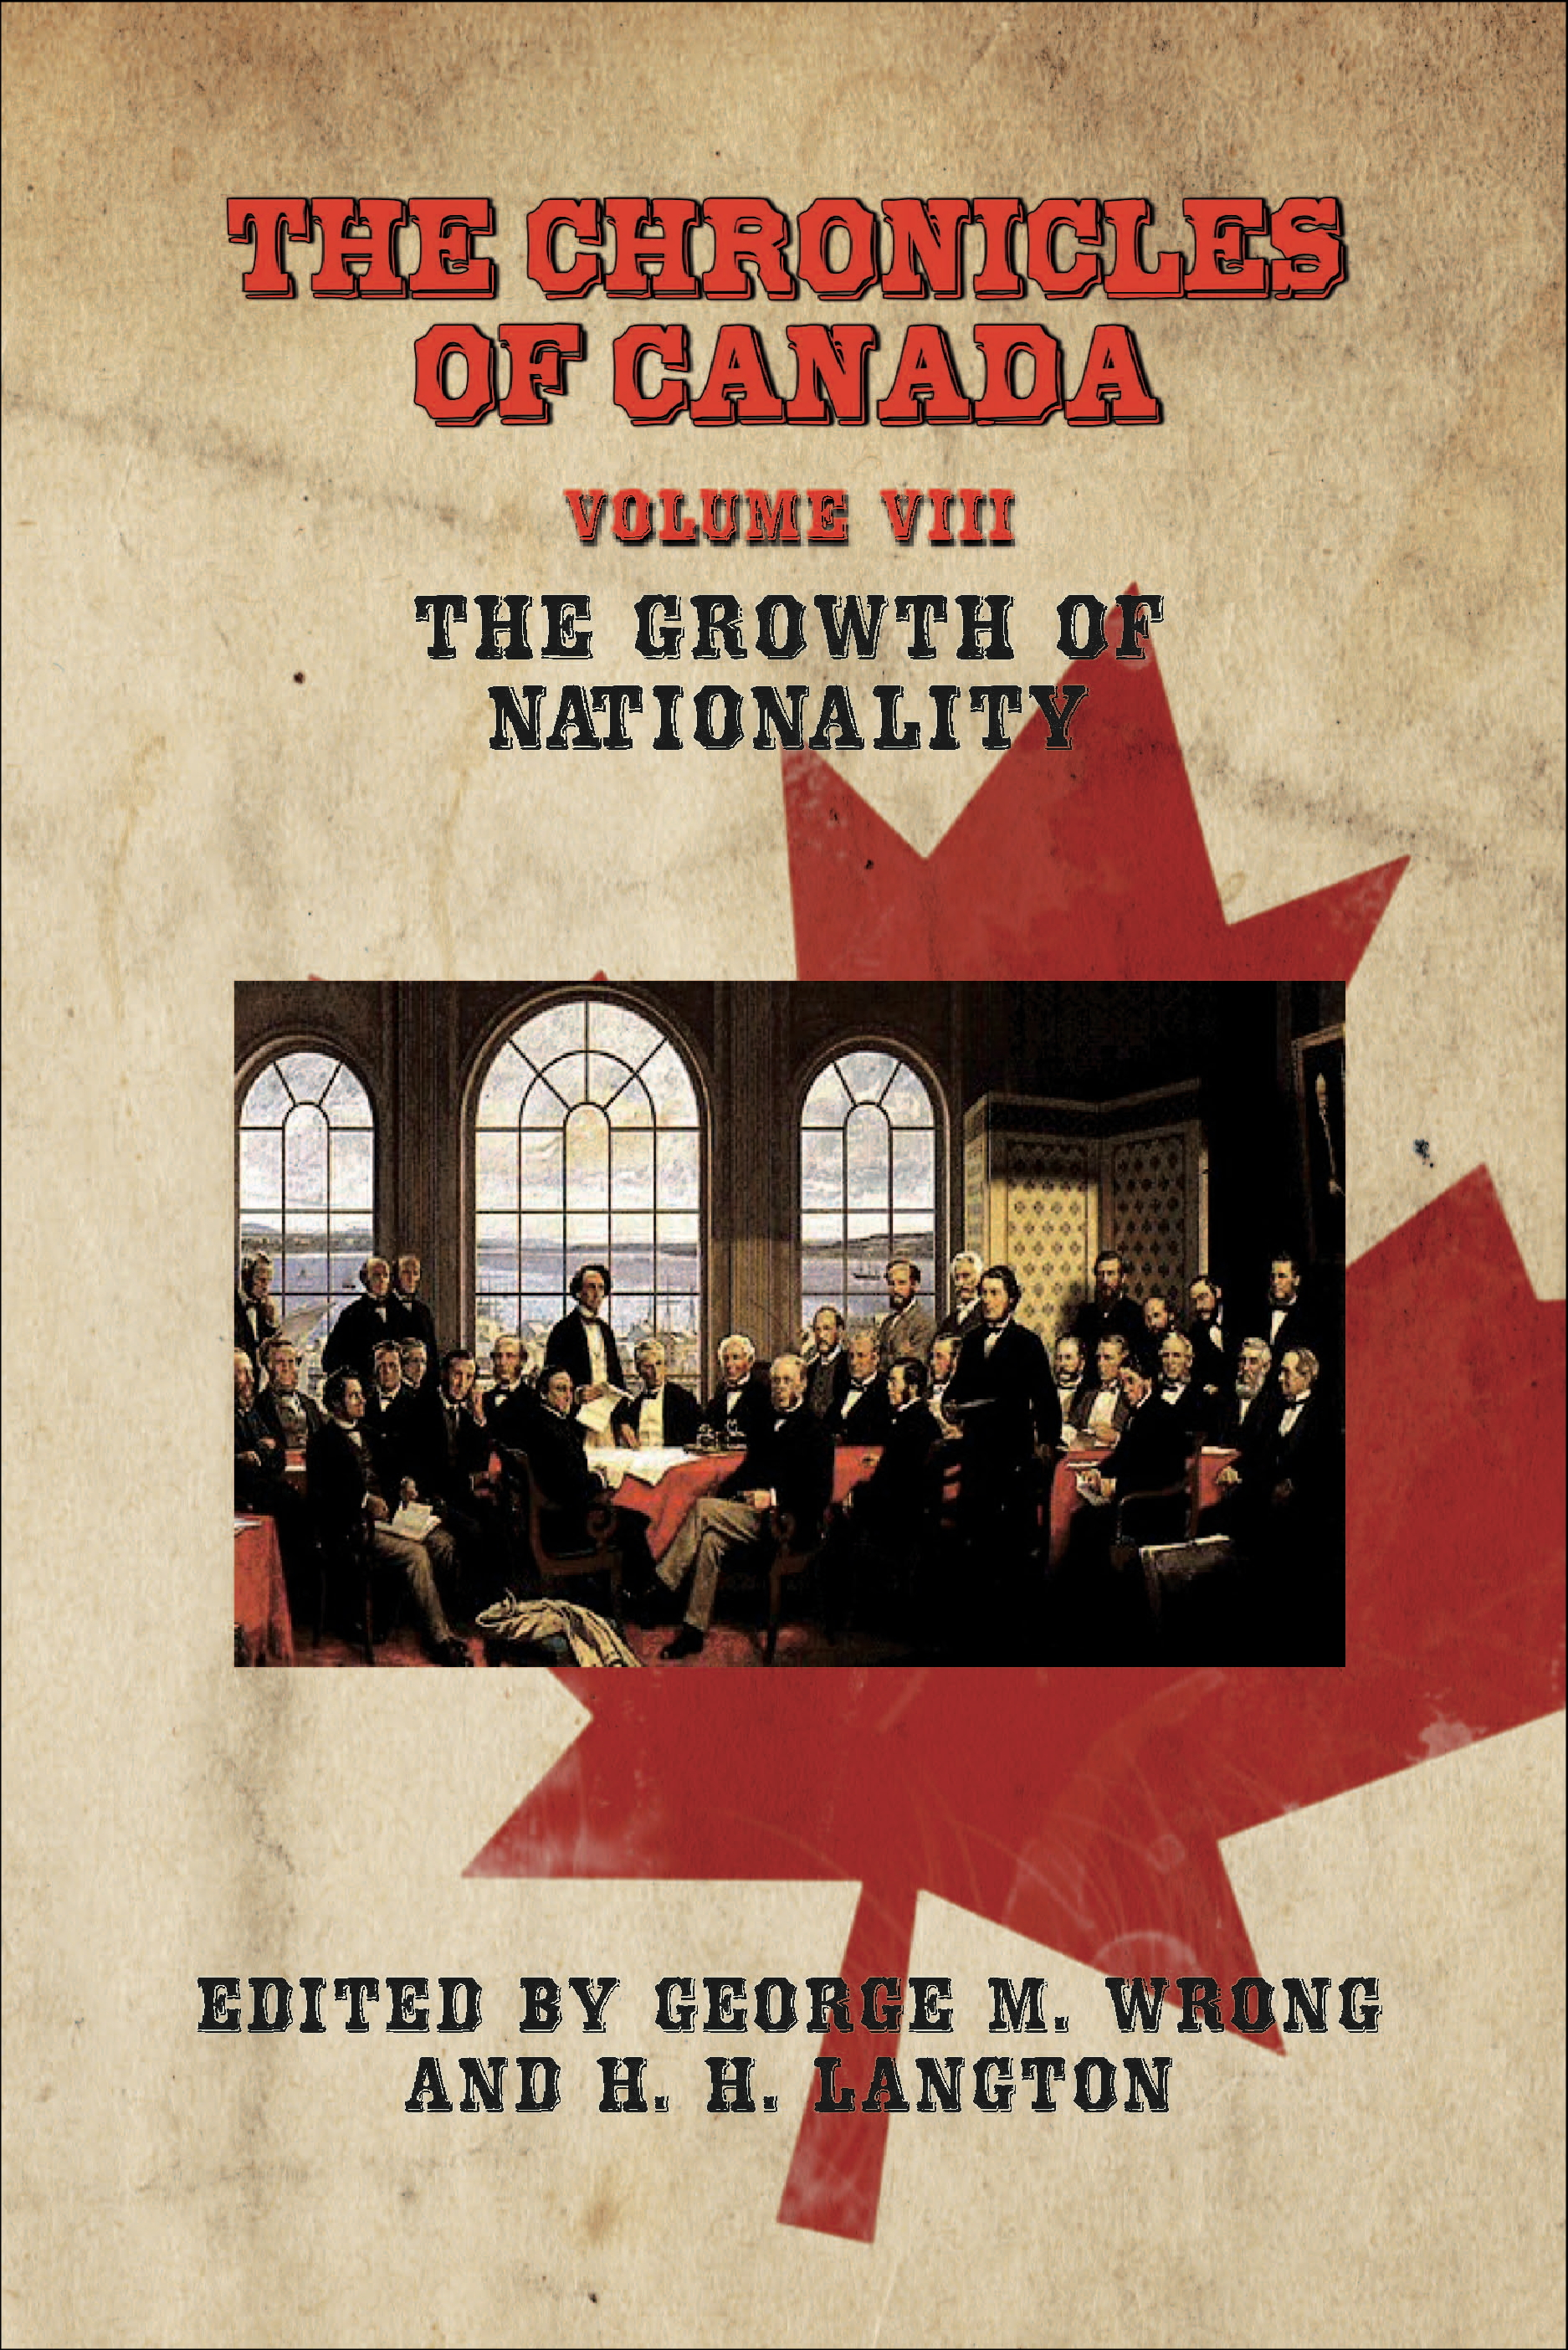 THE CHRONICLES OF CANADA: Volume VIII - The Growth of Nationality By: George M. Wrong and H. H. Langton